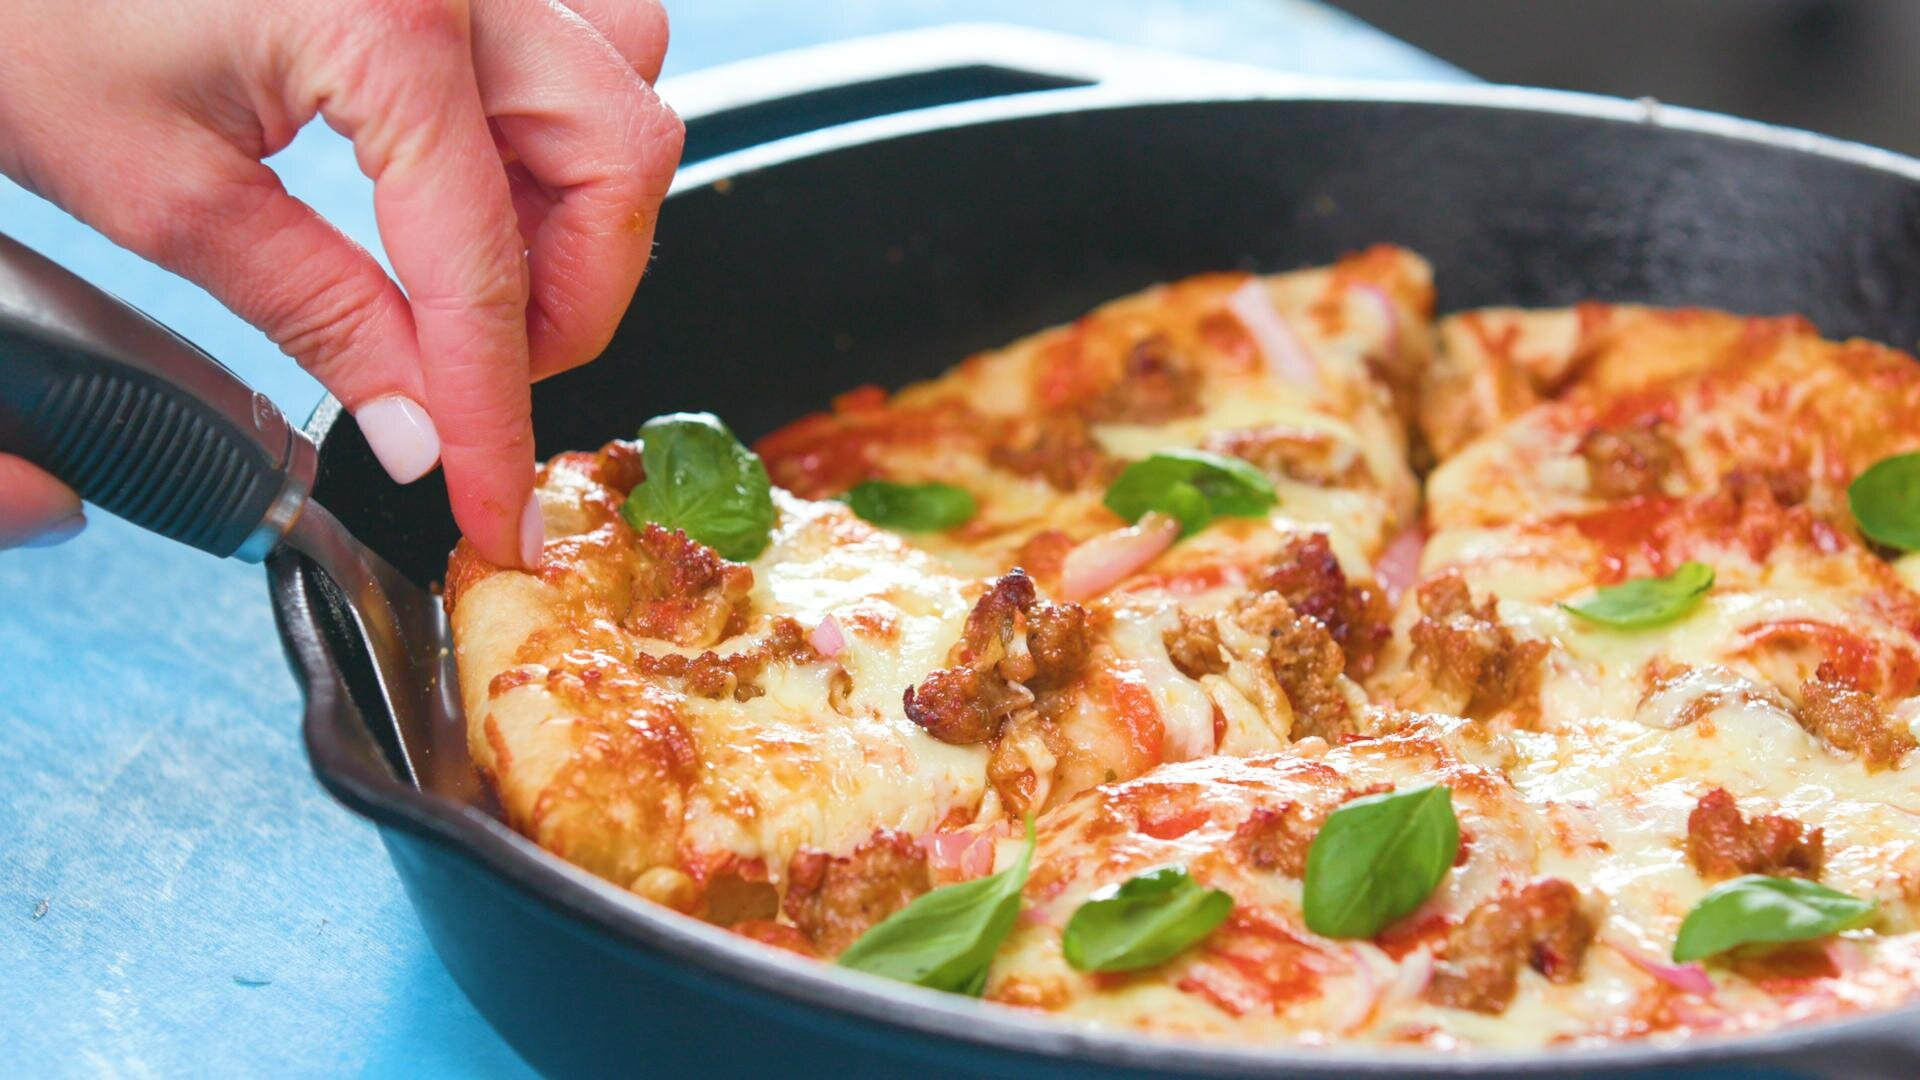 How to Make Classic Cast Iron Pizza